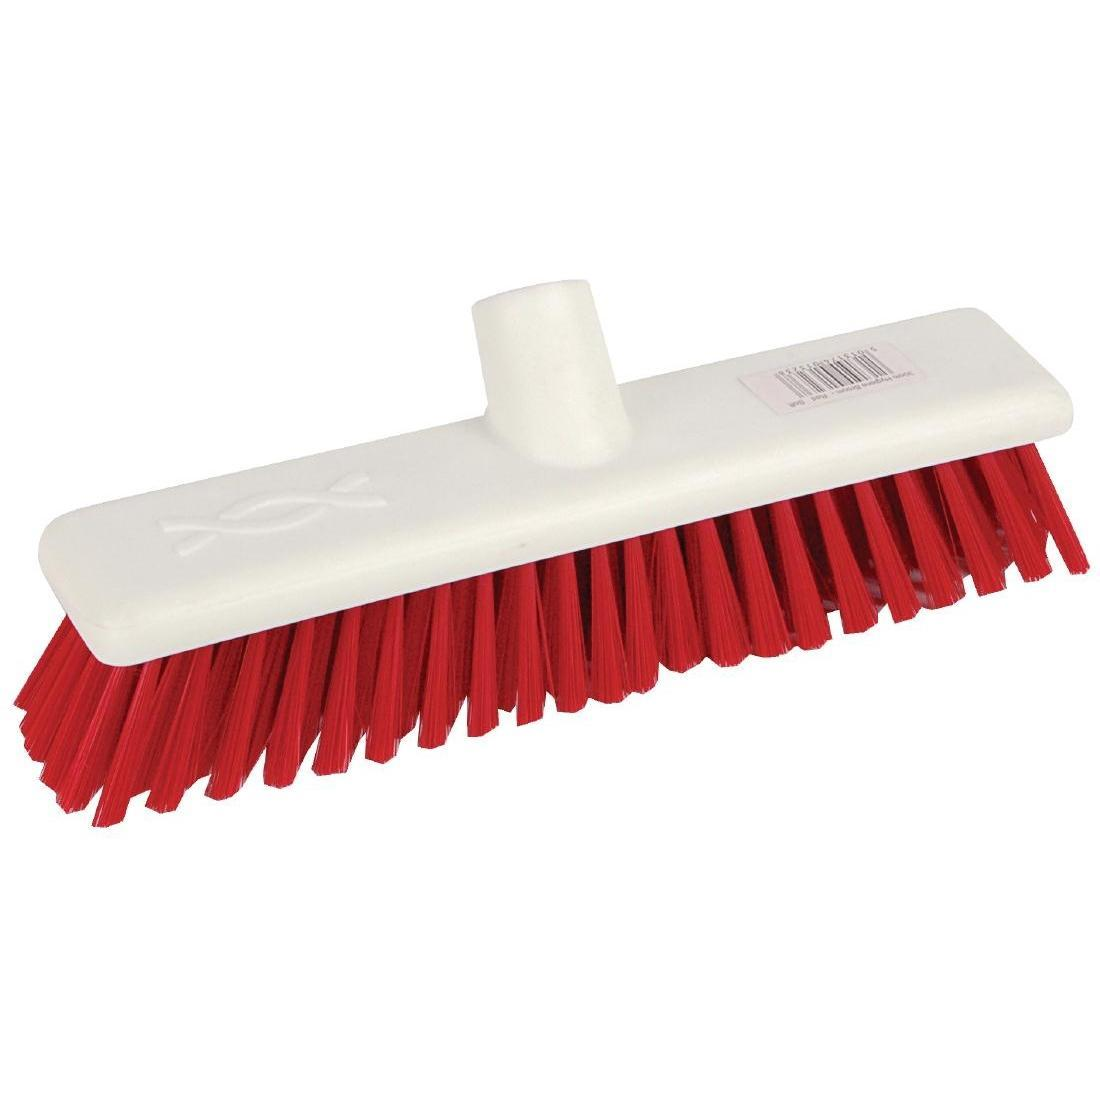 Jantex Hygiene Broom Soft Bristle Red 12in